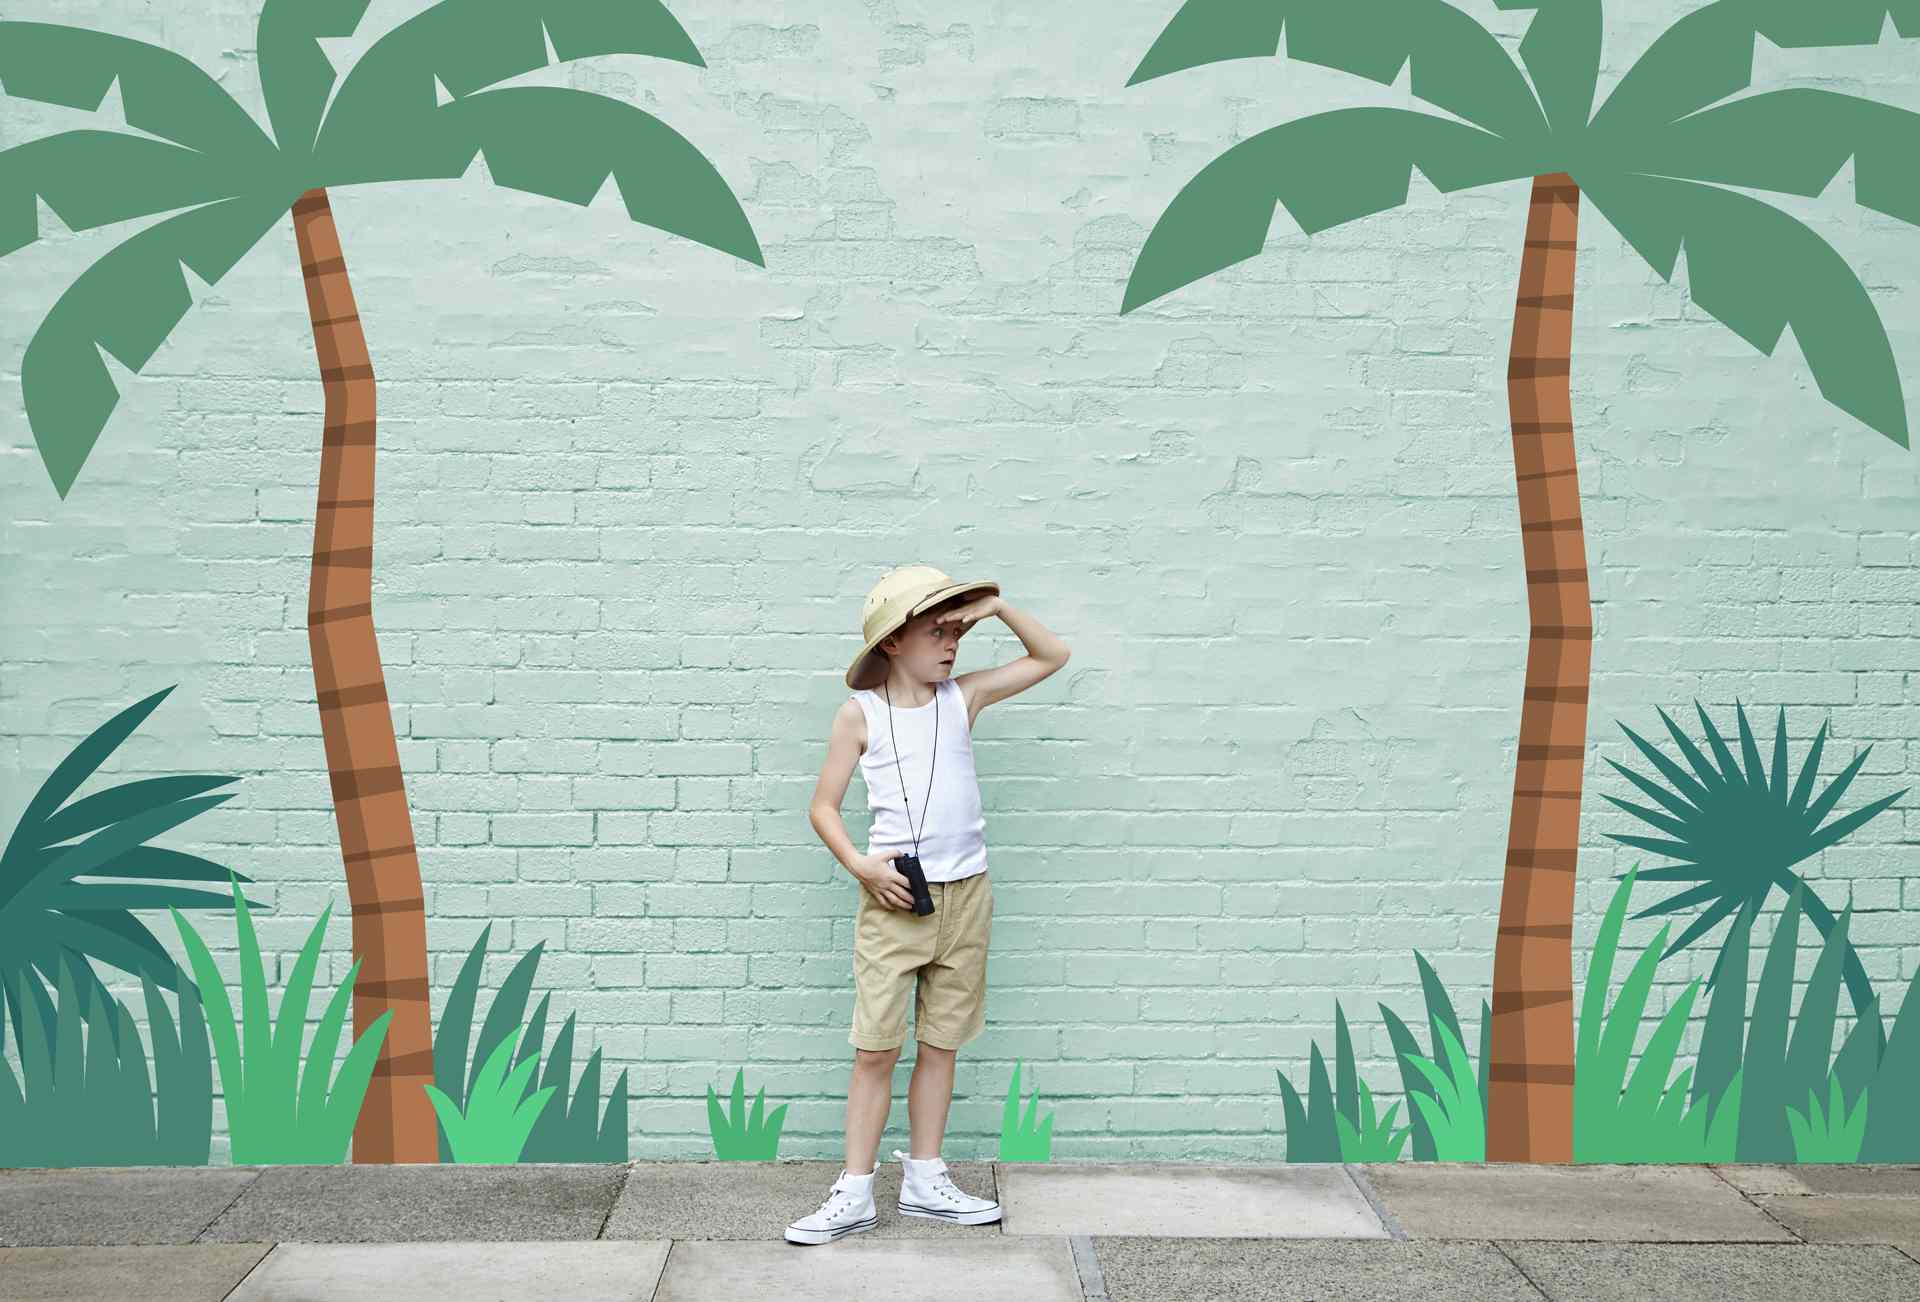 A boy in a safari outfit standing in front of a jungle adventure painting.